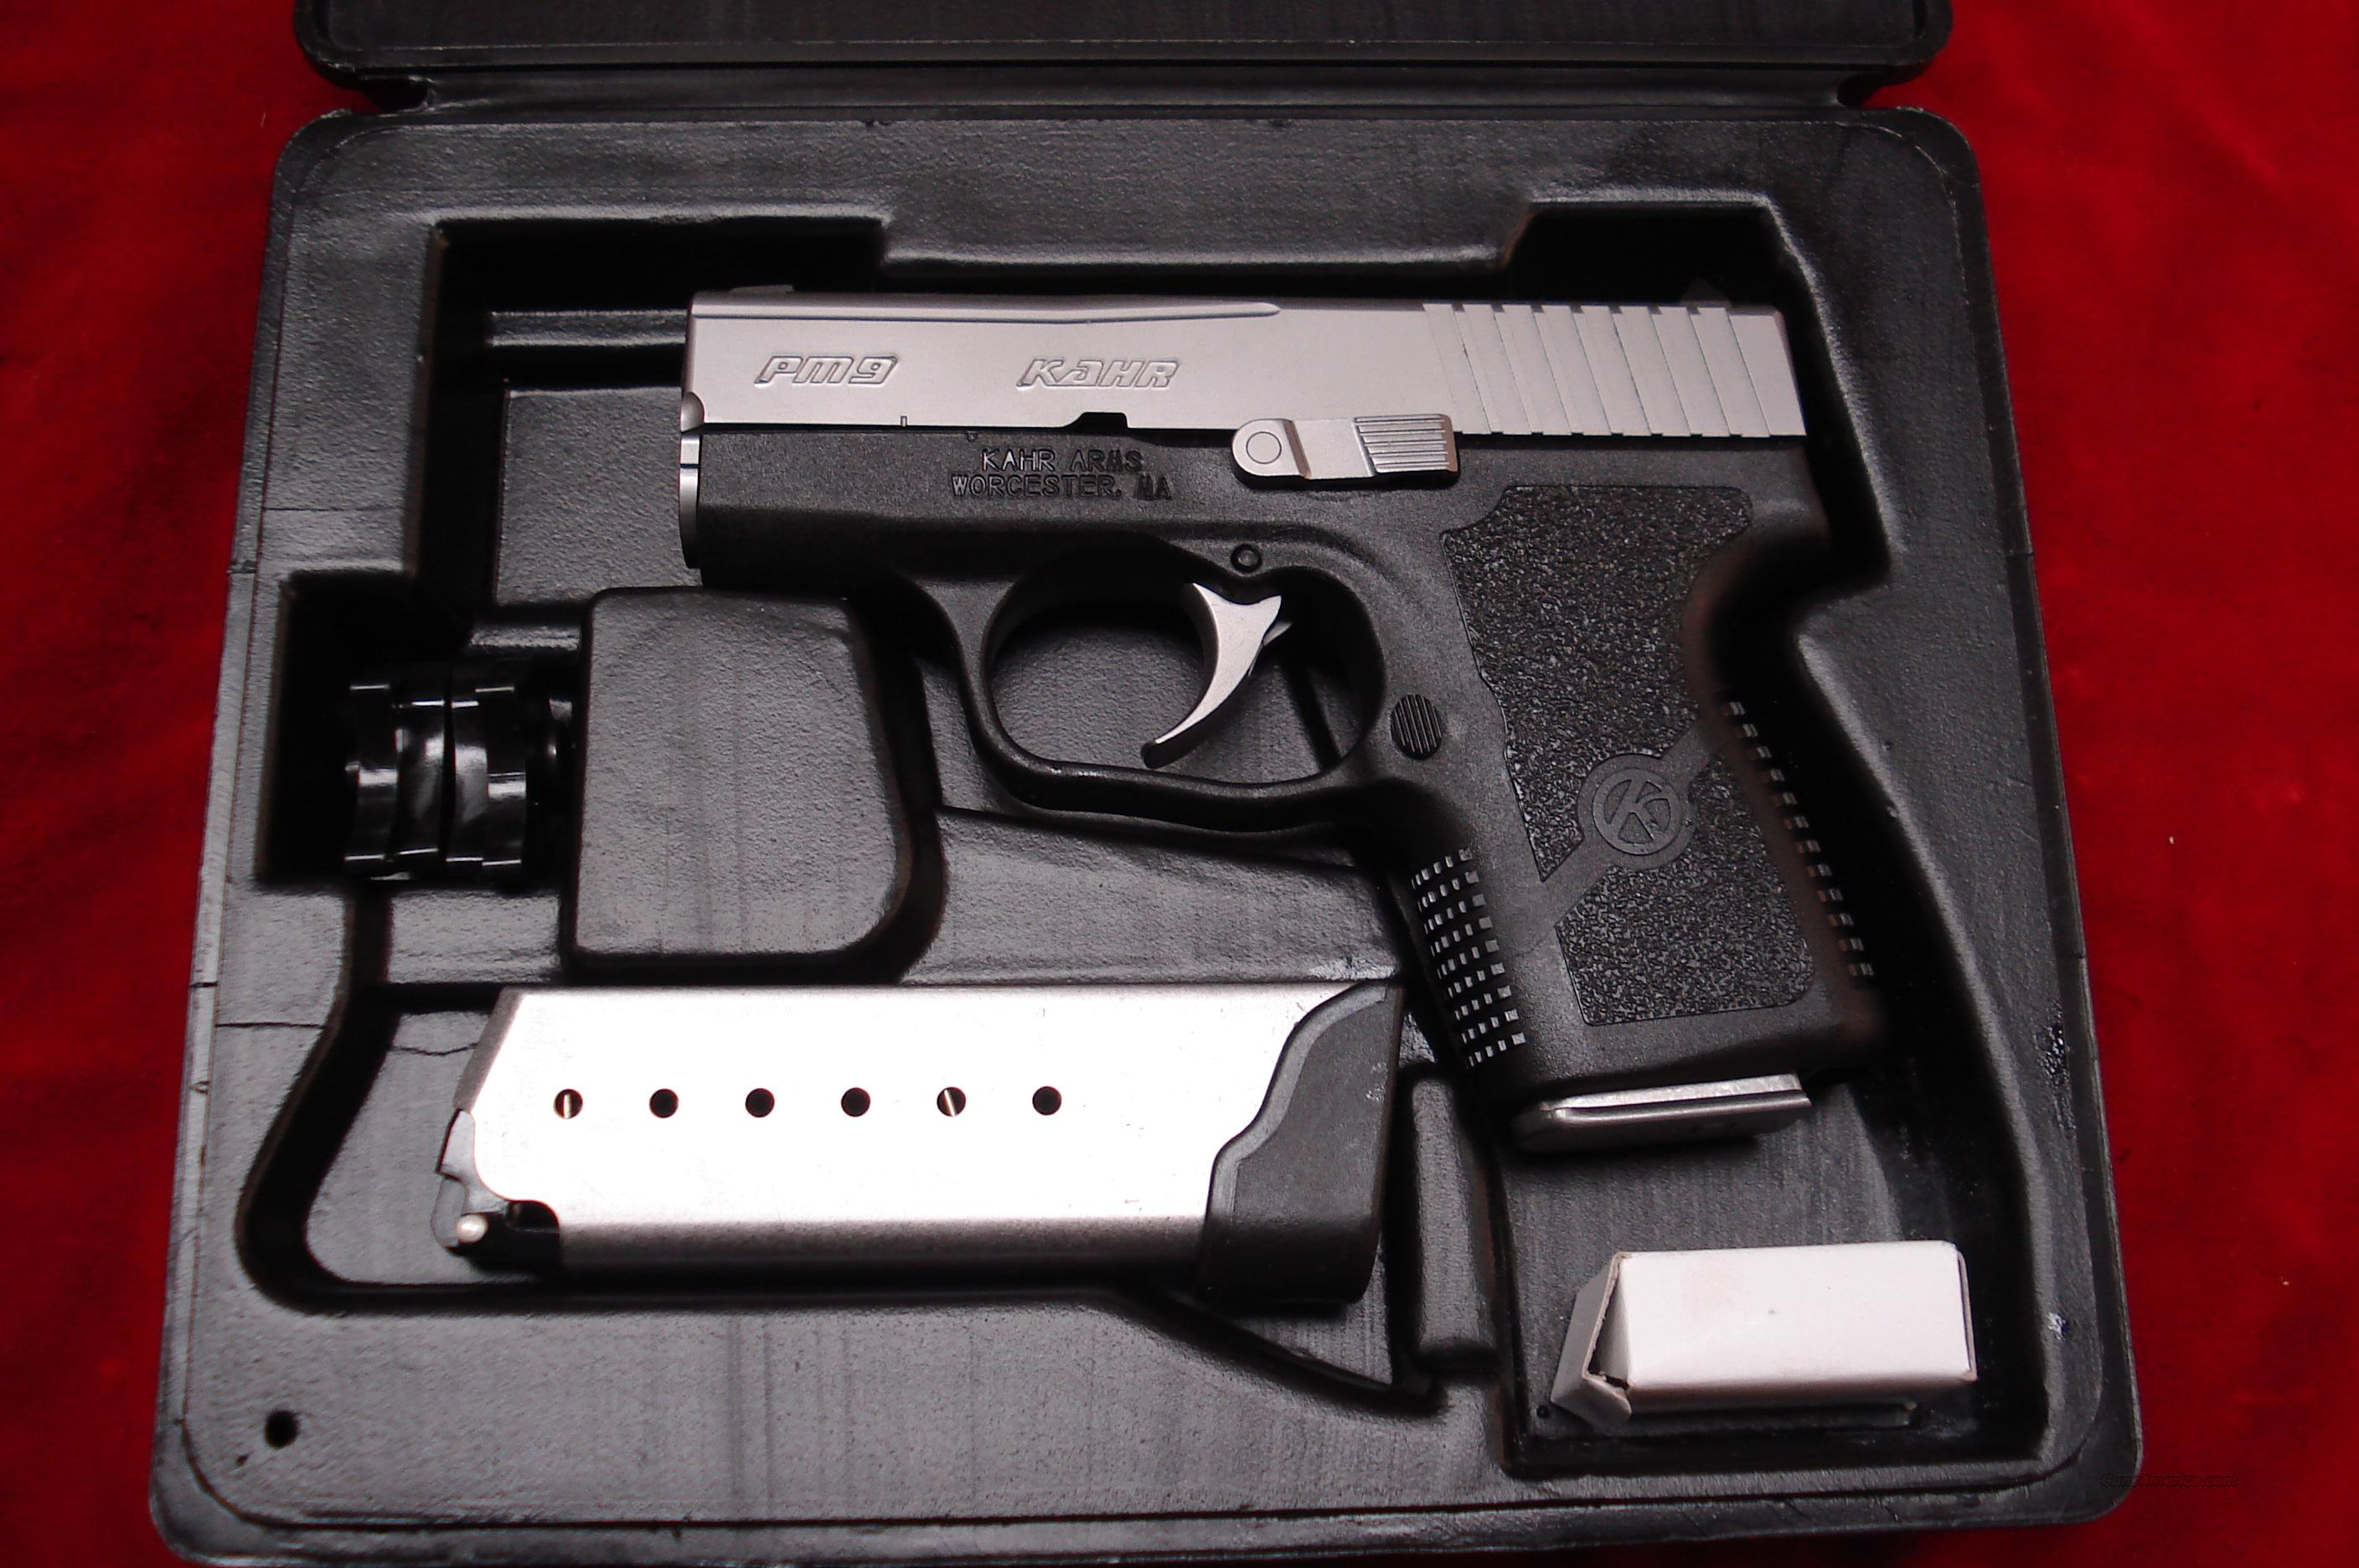 KAHR ARMS PM9 9MM STAINLESS NEW  Guns > Pistols > Kahr Pistols